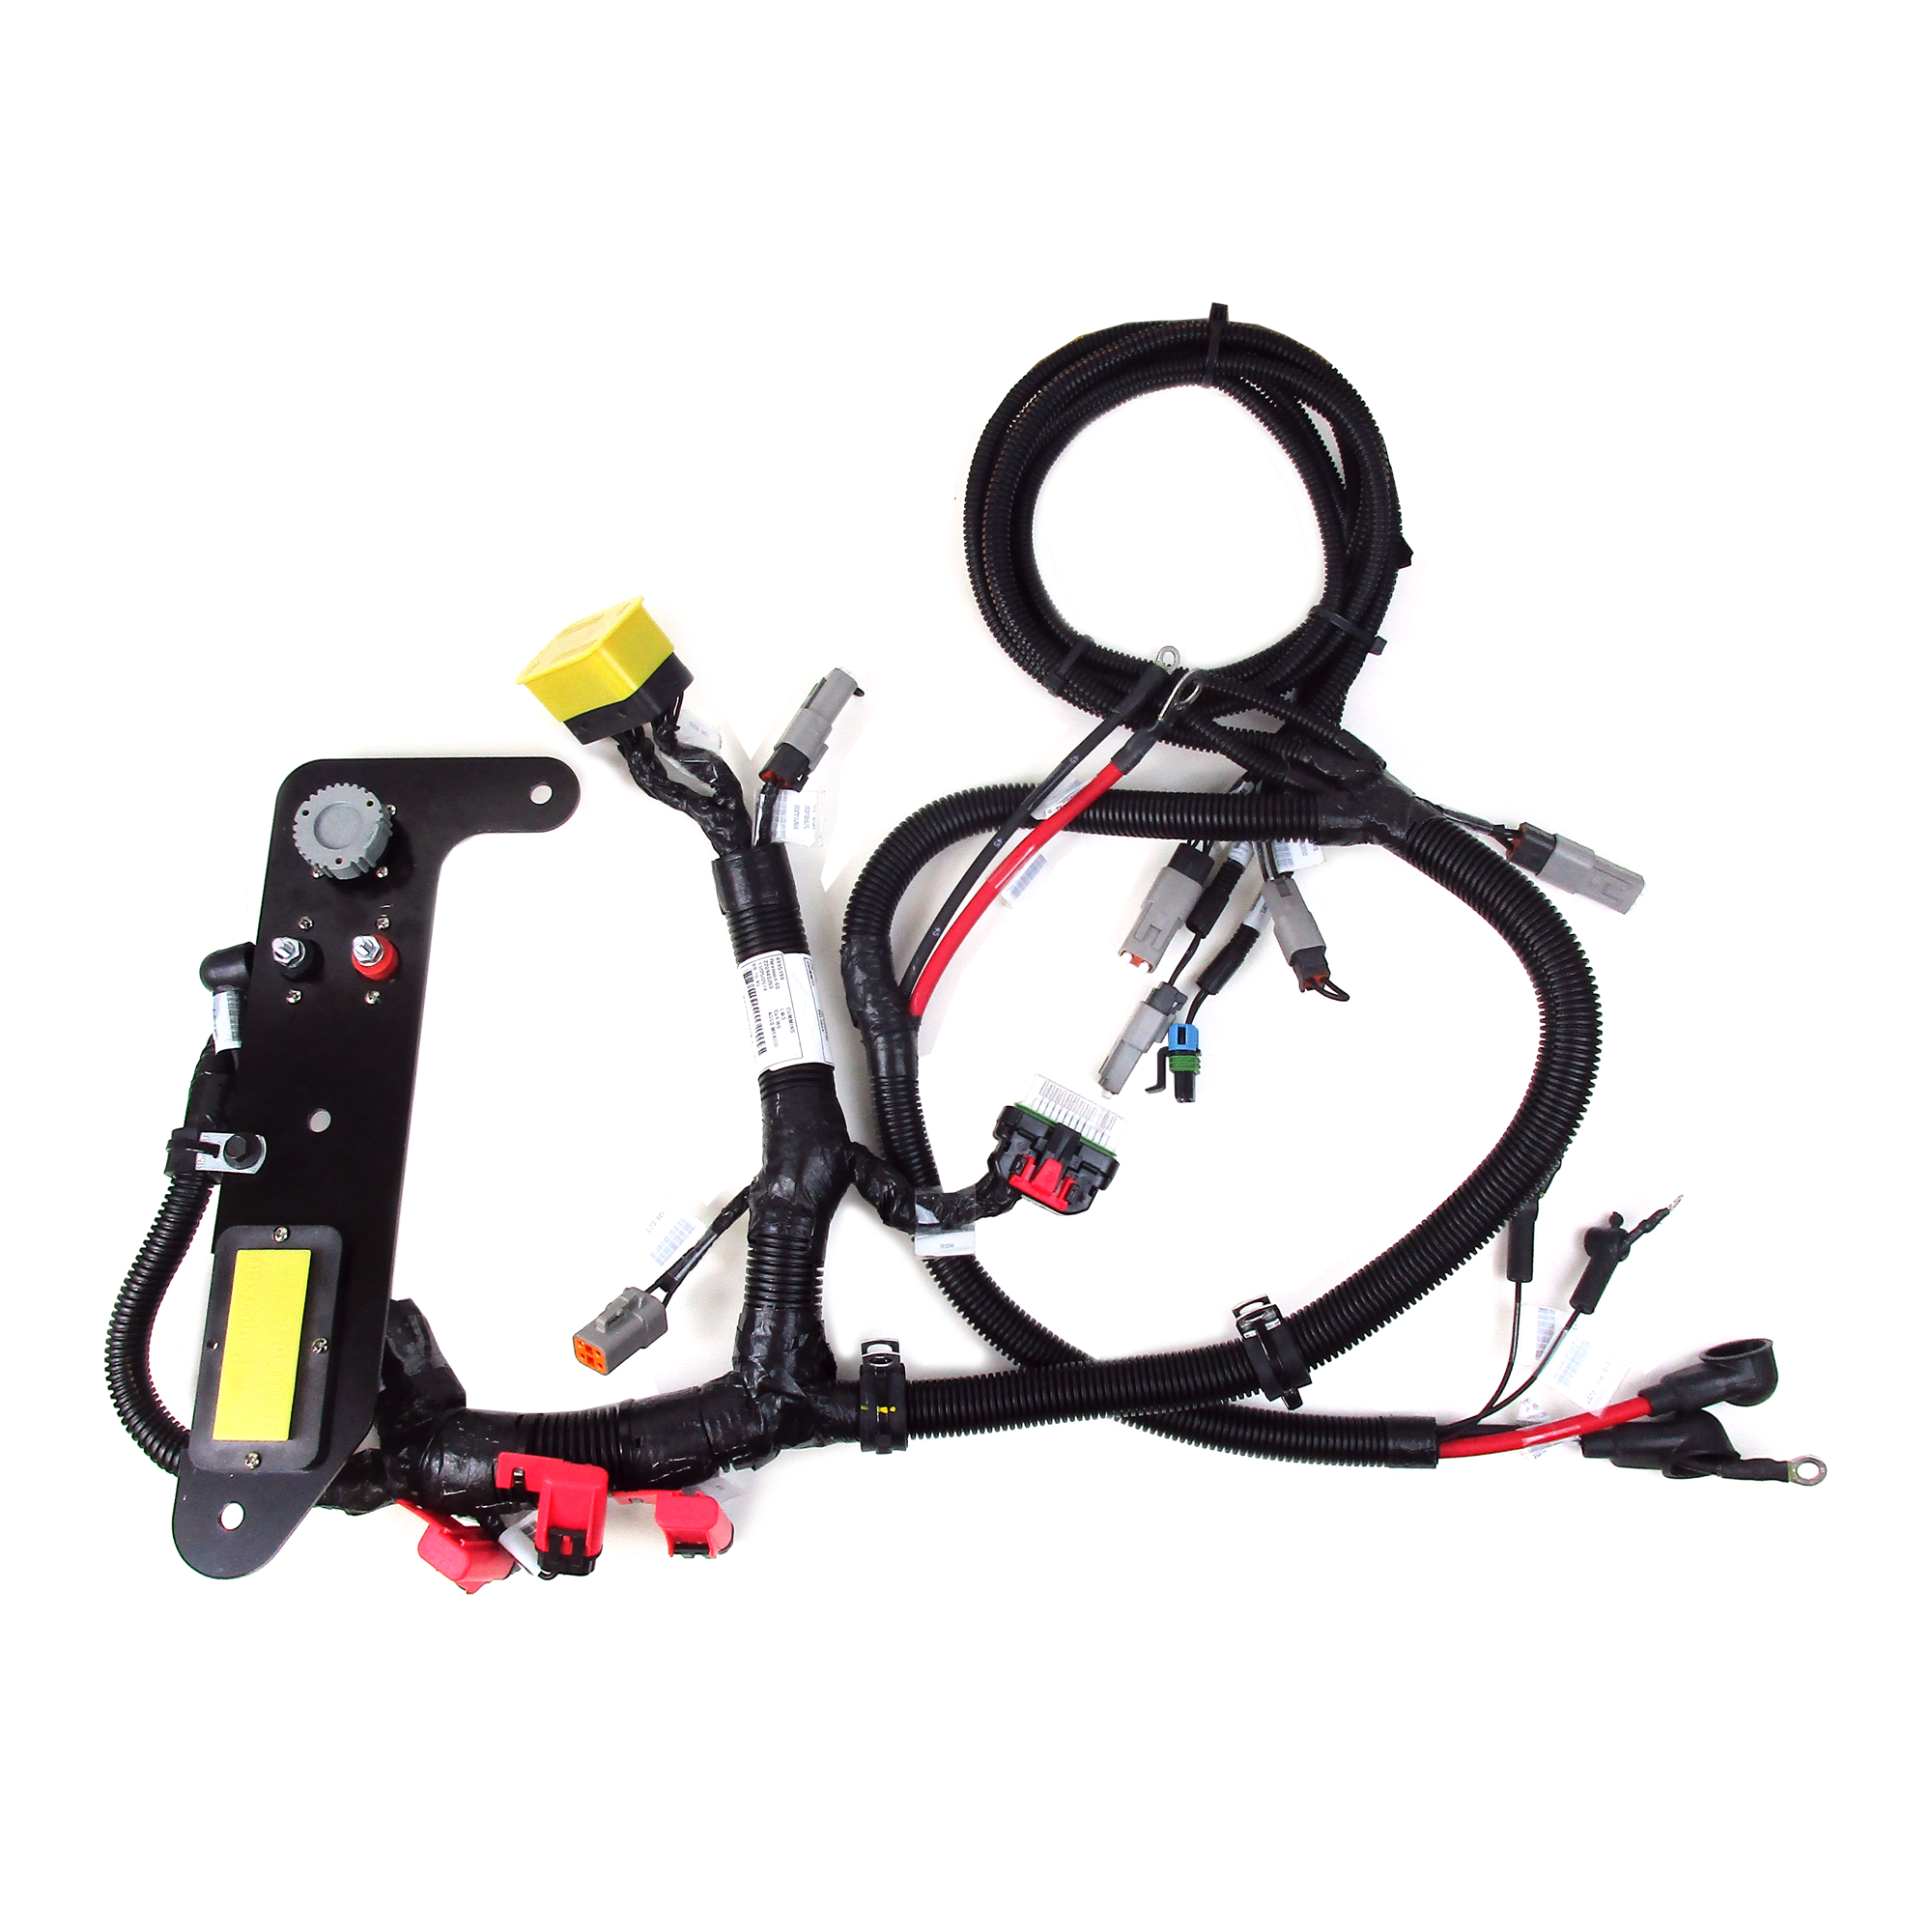 QSB 5.9 SmartCraft v1.0 On-Engine ECM Harness (4995199)